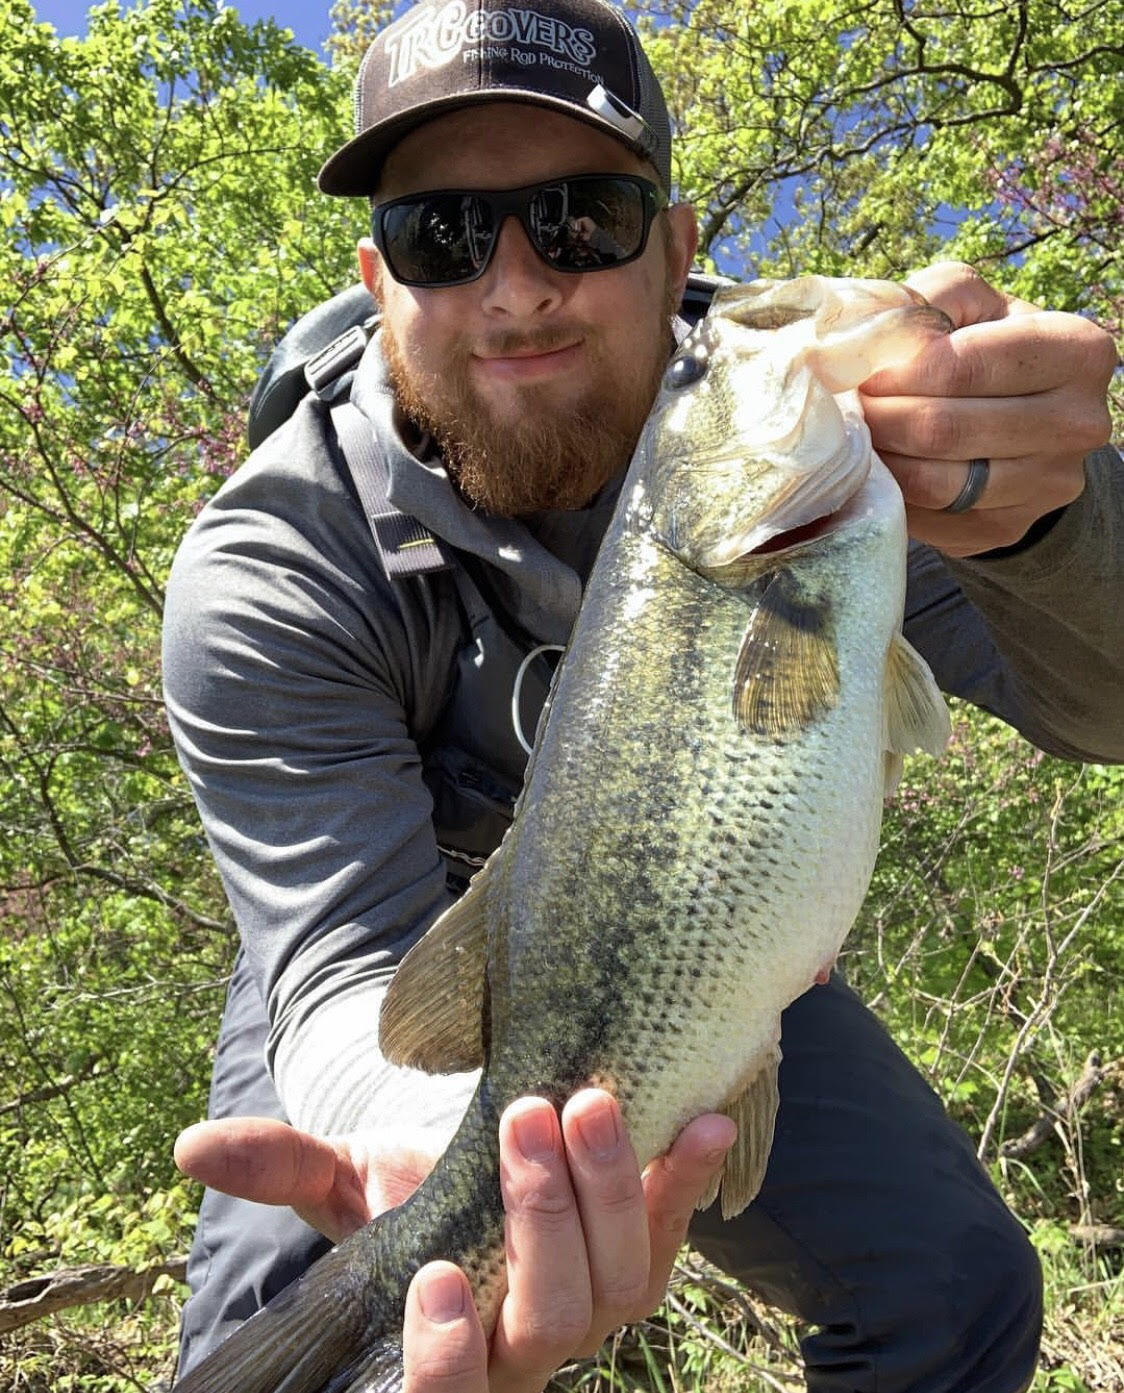 Sam's Gear - GearBoat - Bonafide SS127Paddle- Bending Branches Angler ProElectronics- Lowrance Hook2 7 TS,Anglr Premium Maps & BullseyePFD: NRS ChinookRods: Fx Custom Rods, Xtreme Angler SeriesFavorite Baits: Swimabait, Frog, Buzzbait, Shakey head, Jig